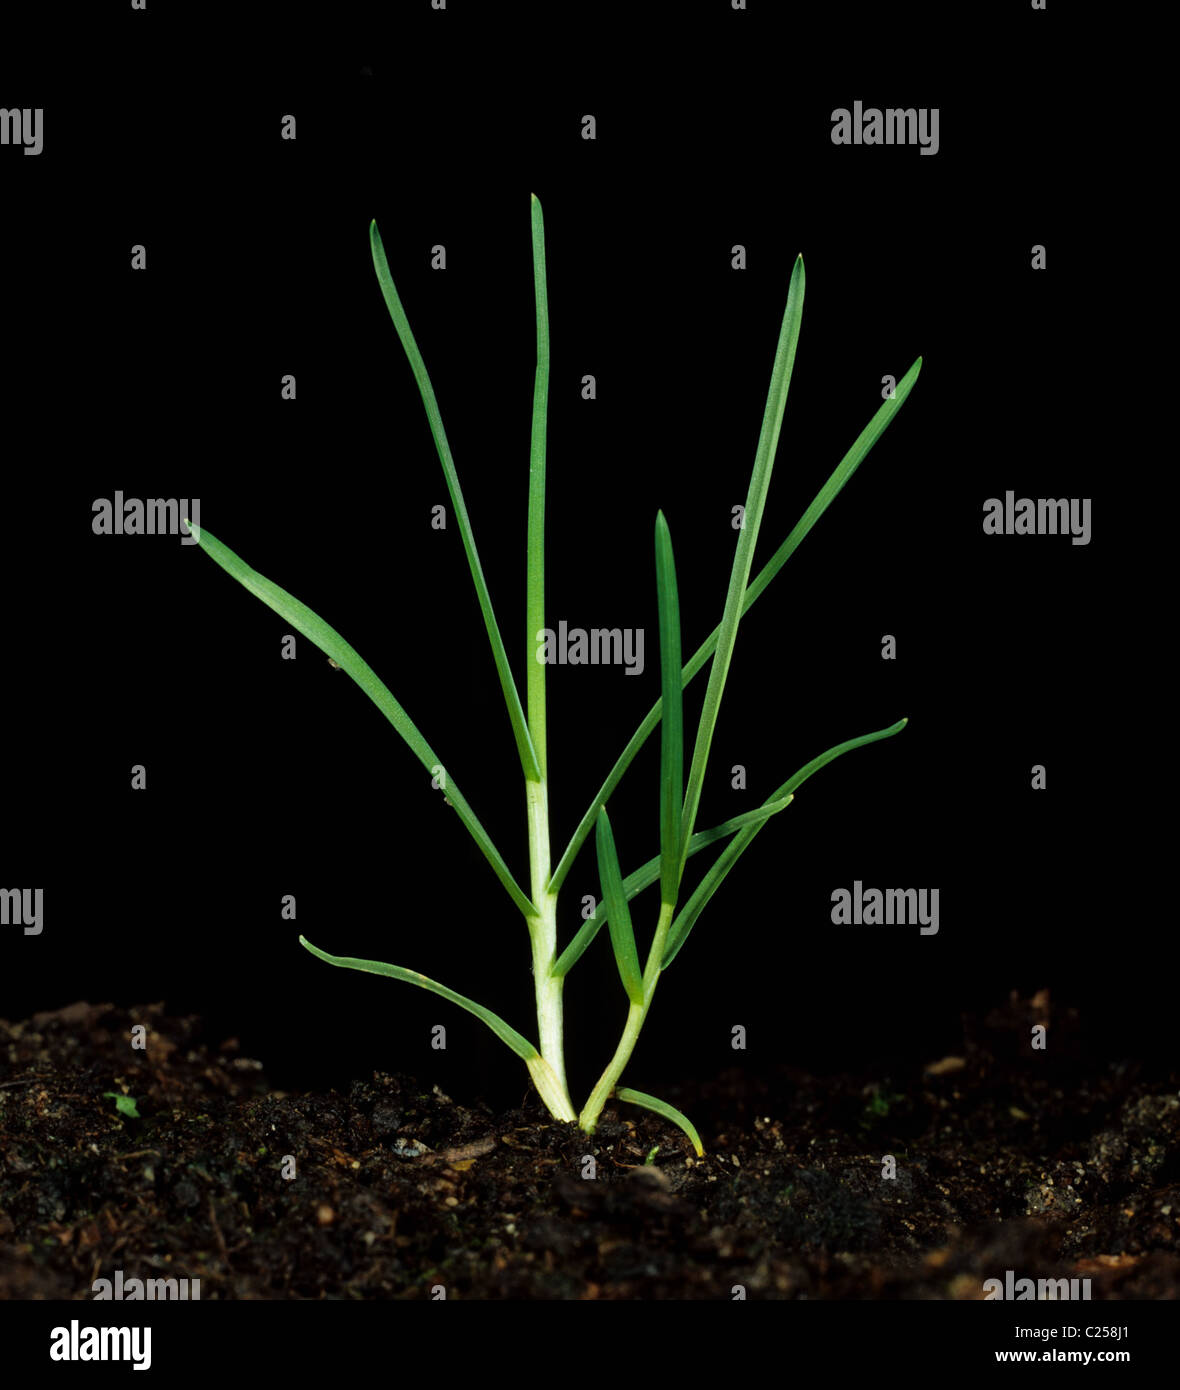 Rough-stalked meadow grass (Poa trivialis) tillering plant - Stock Image